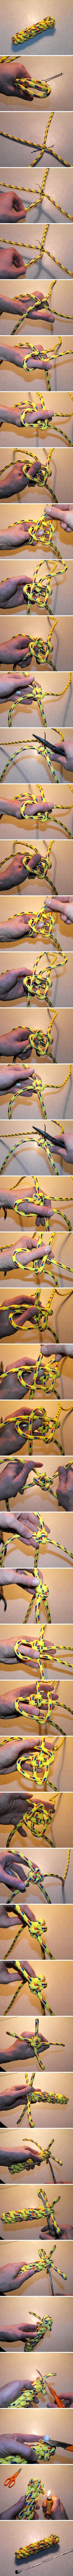 how to make Dog toys for heavy chewers step by step DIY tutorial instructions how to make Dog toys for heavy chewers step by step DIY tutori...